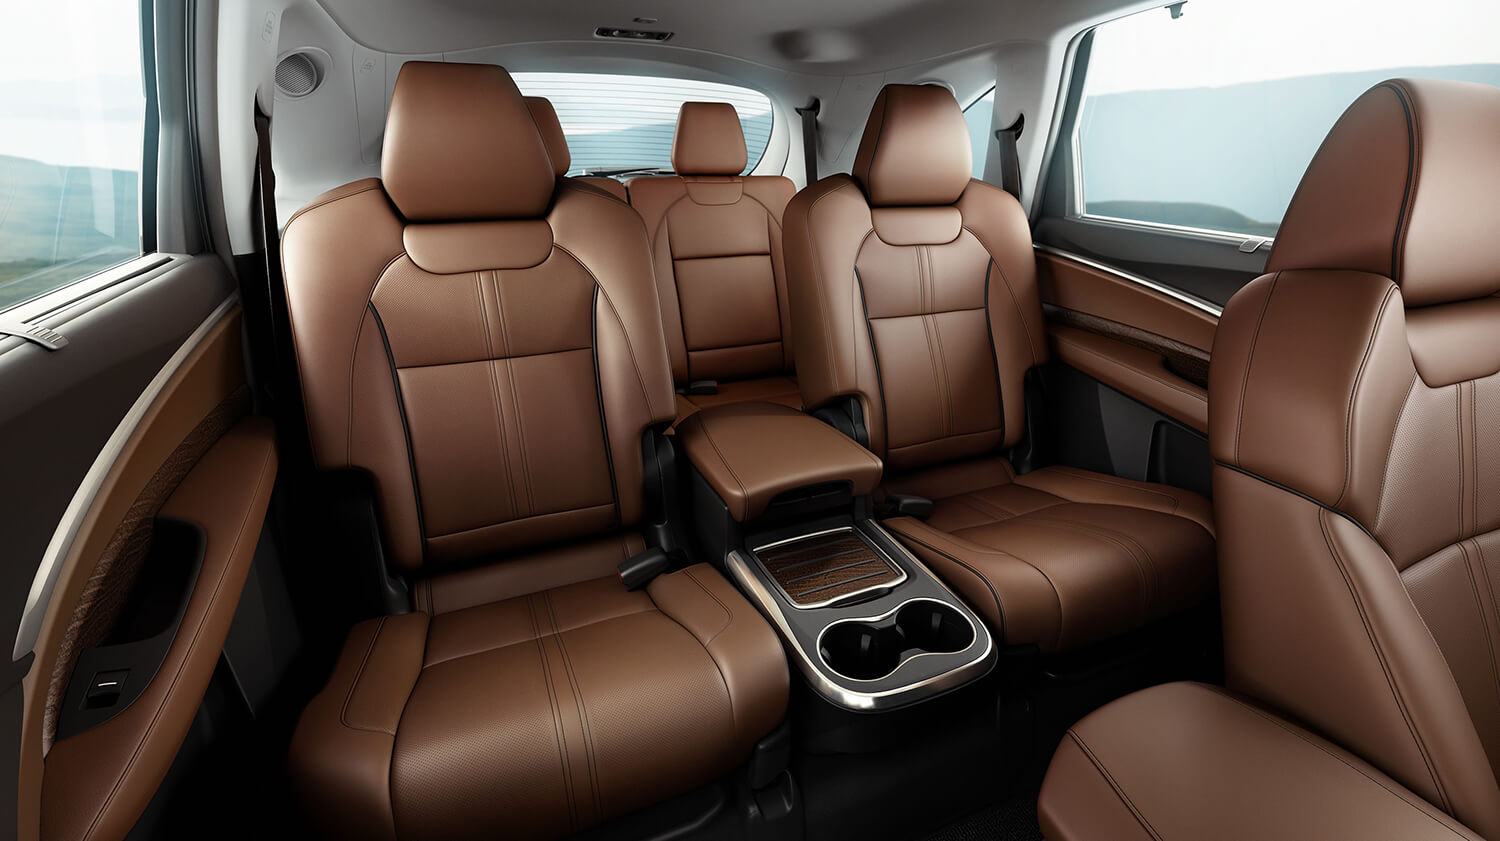 MDX Interior Seating